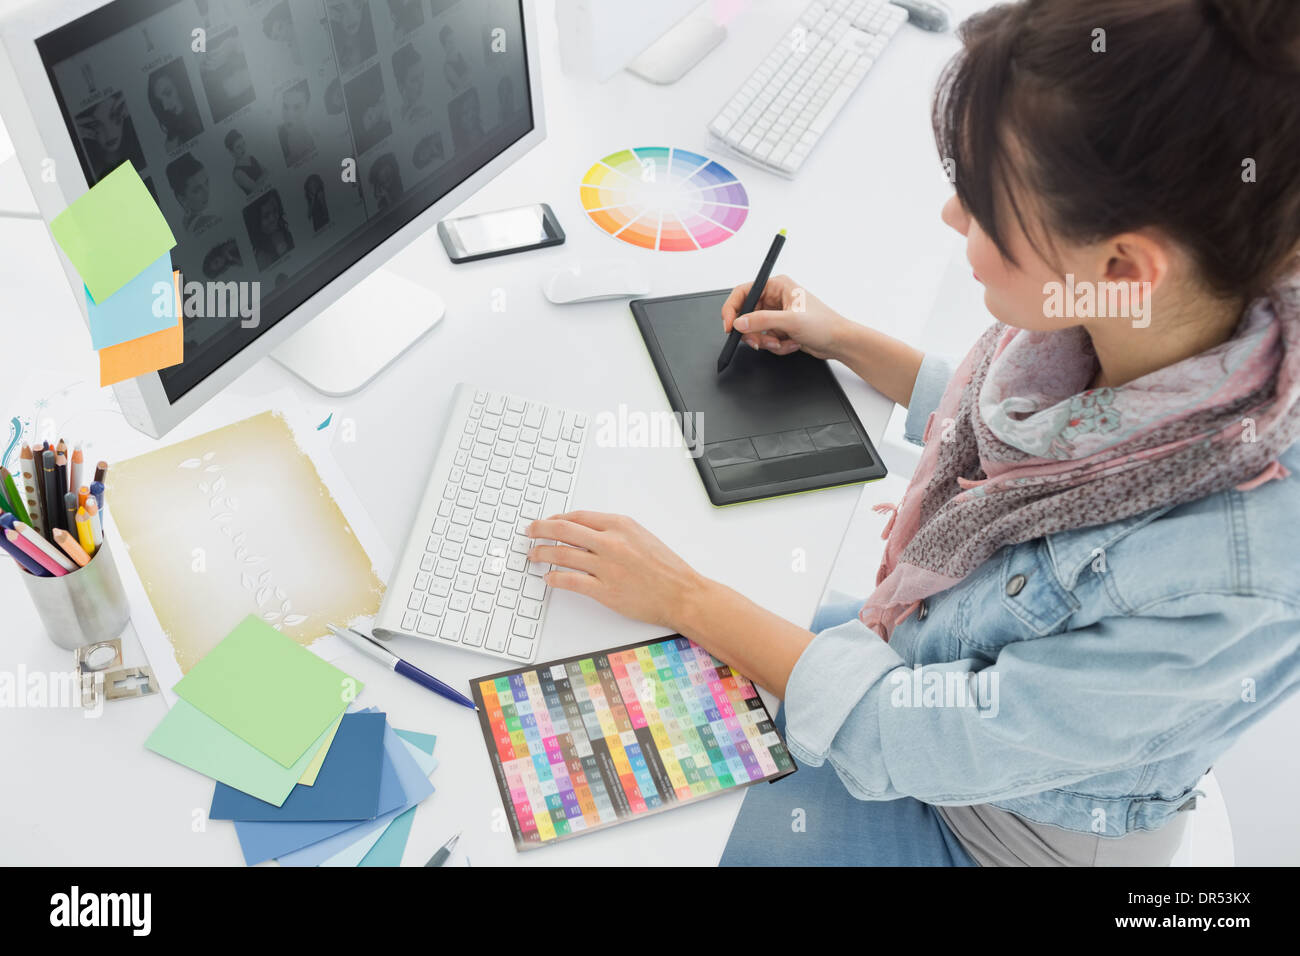 Artist drawing something on graphic tablet at office Stock Photo